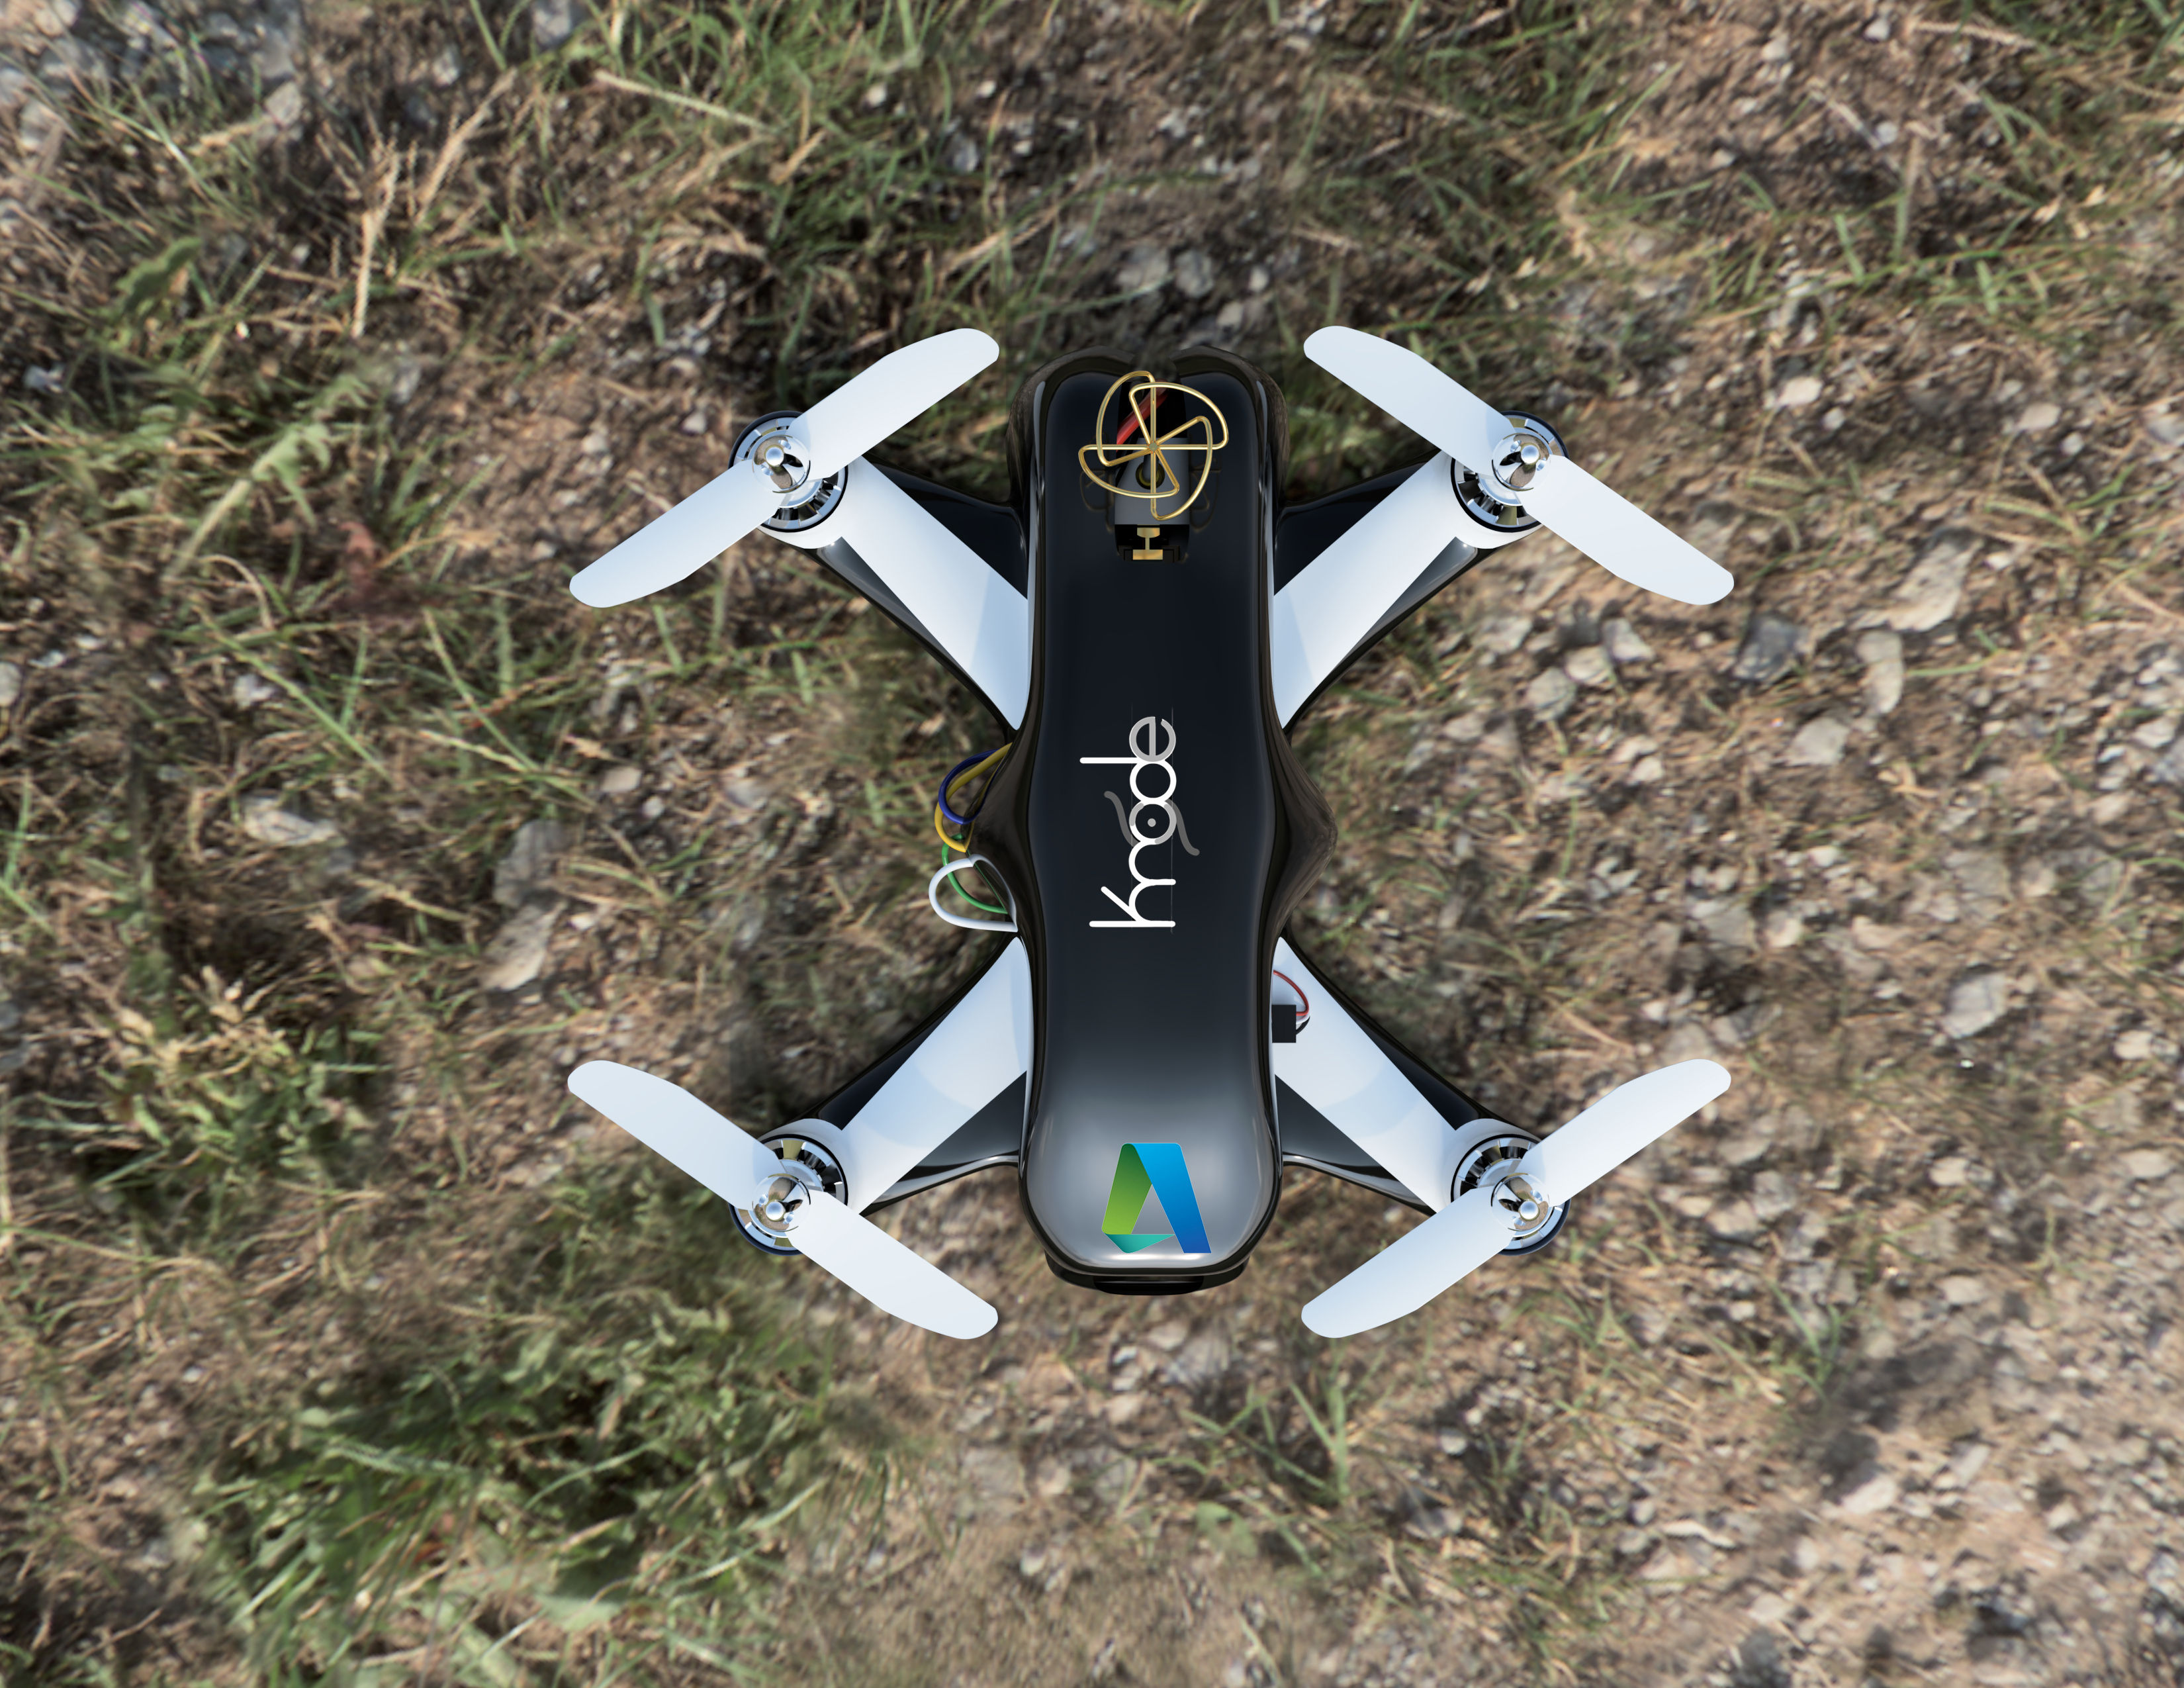 Krish-drone-2018-jun-26-11-38-21am-000-customizedview51213485159-jpg-3500-3500